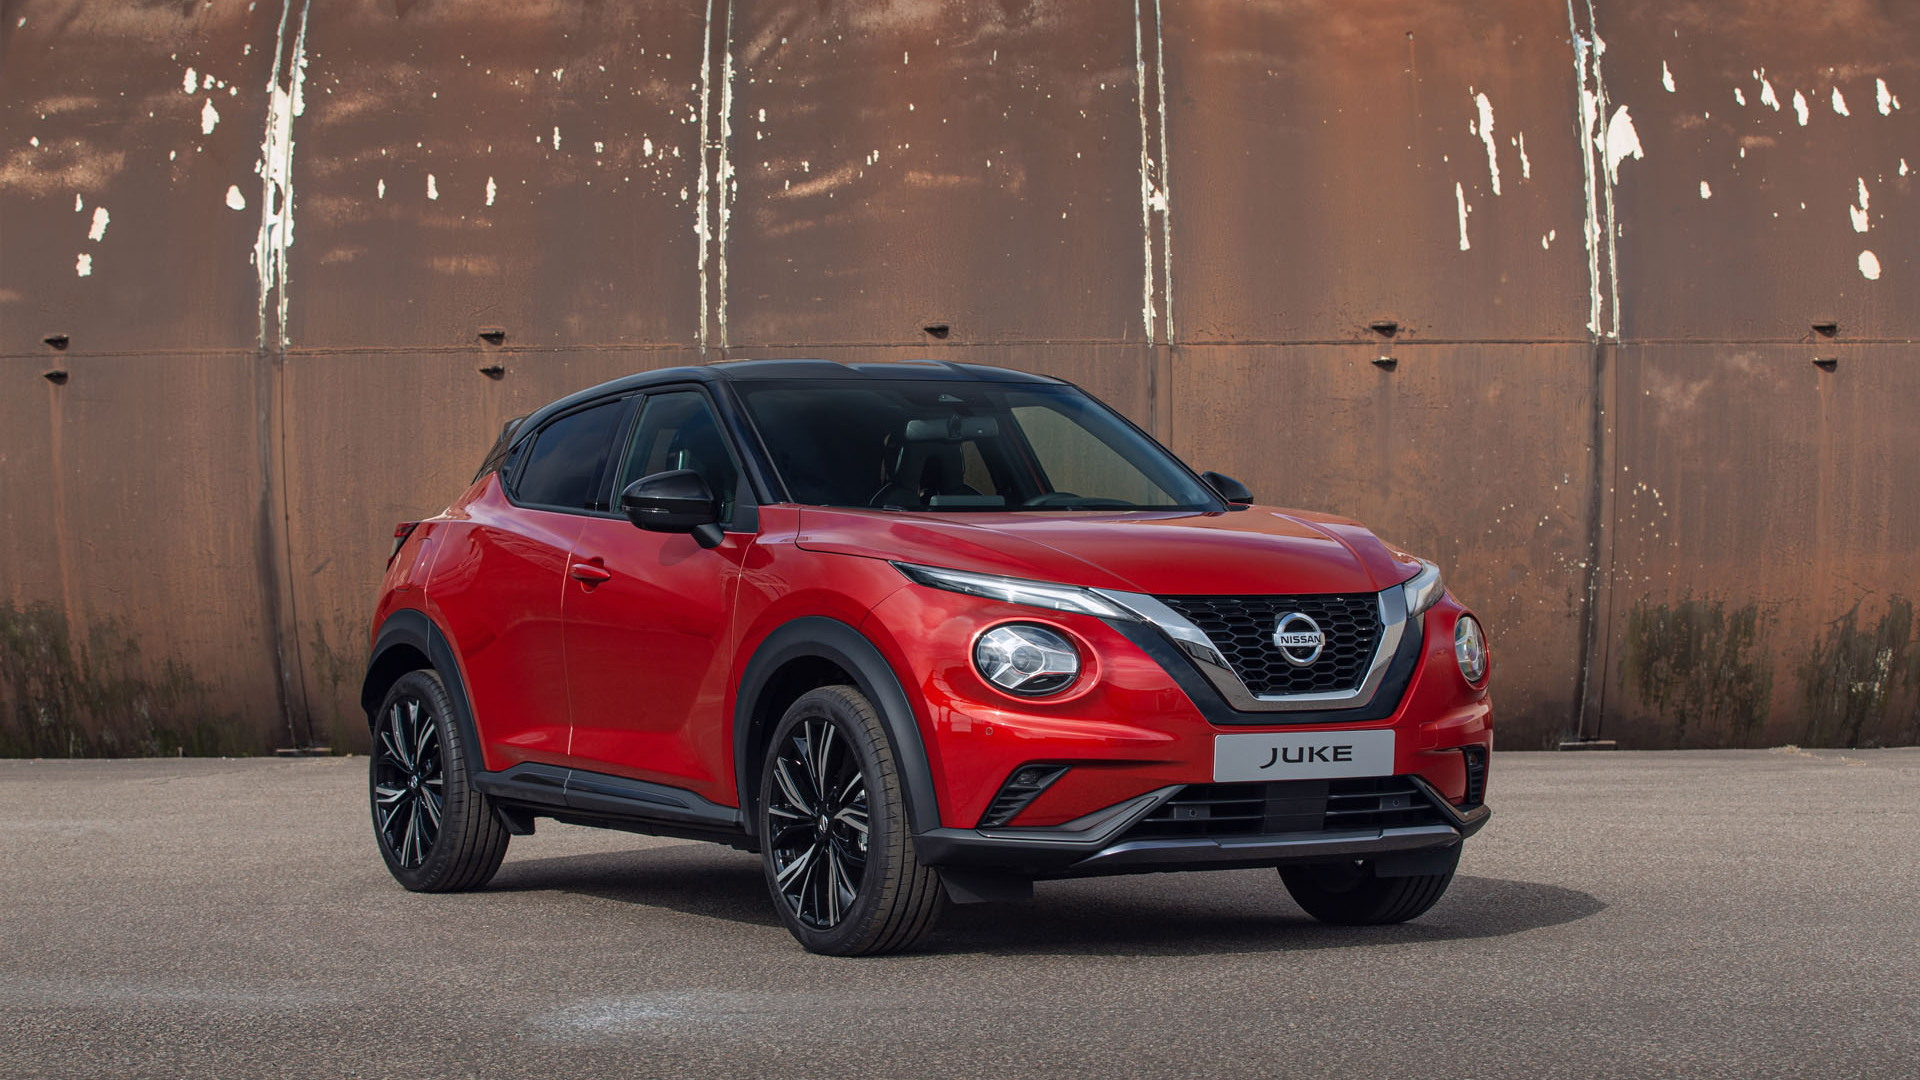 2020 Nissan Qashqai Hybrid Debuts Next Year >> Crisscrossed Redux New Nissan Juke Small Crossover Revealed